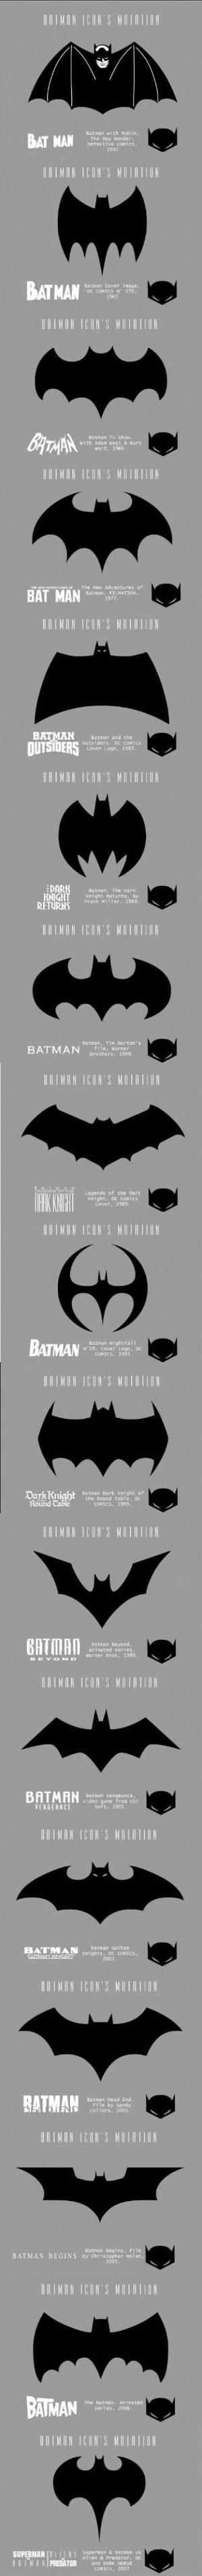 The evolution of Batman logo (cc: @blaioficial) by madge